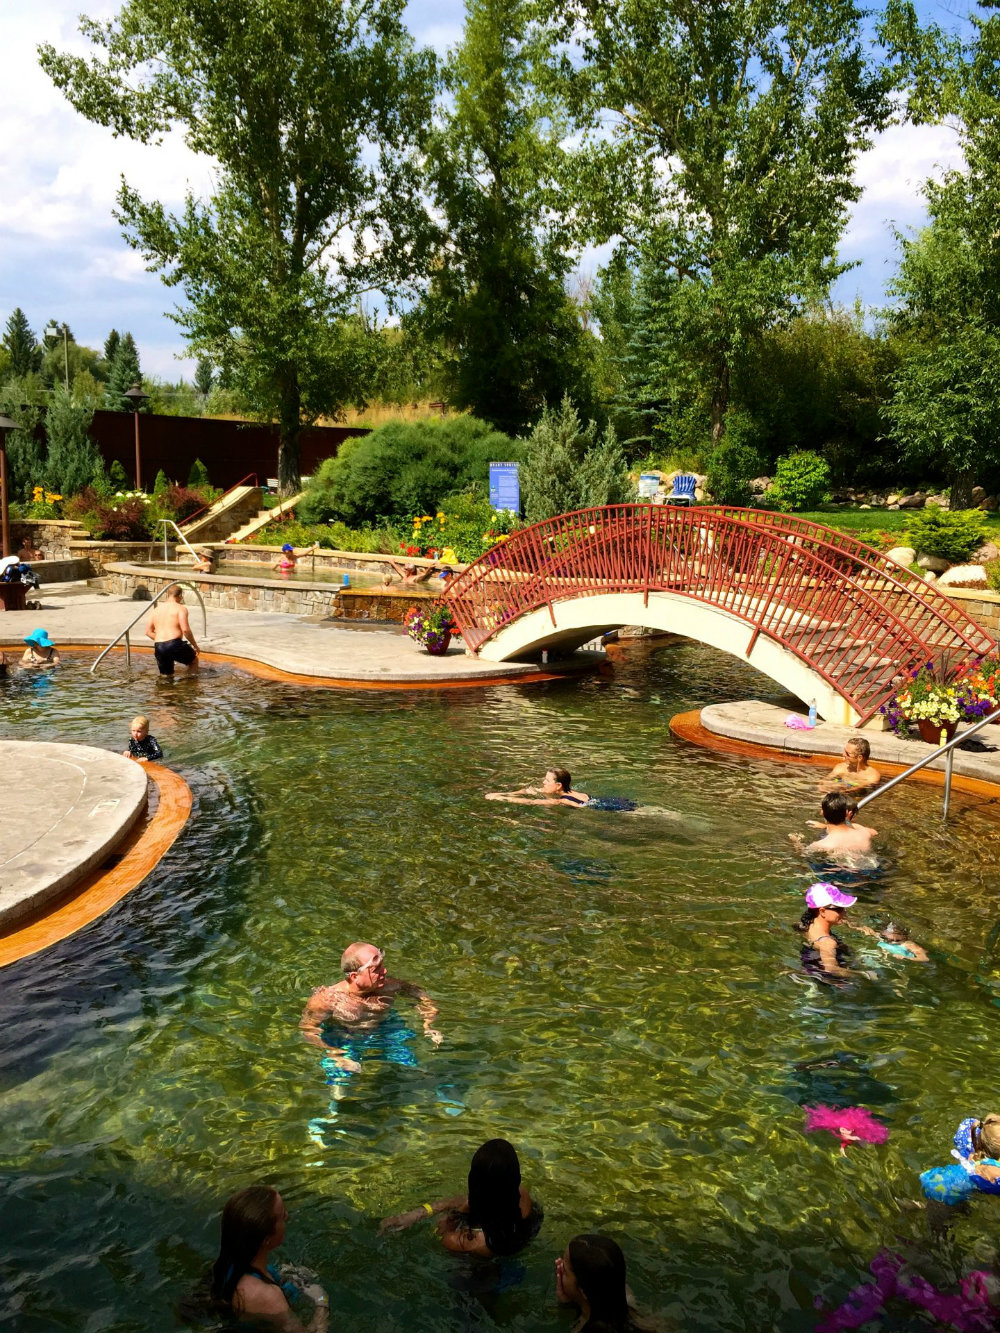 Enjoying the hot springs at Old Town hot springs in Steamboat Springs, CO.